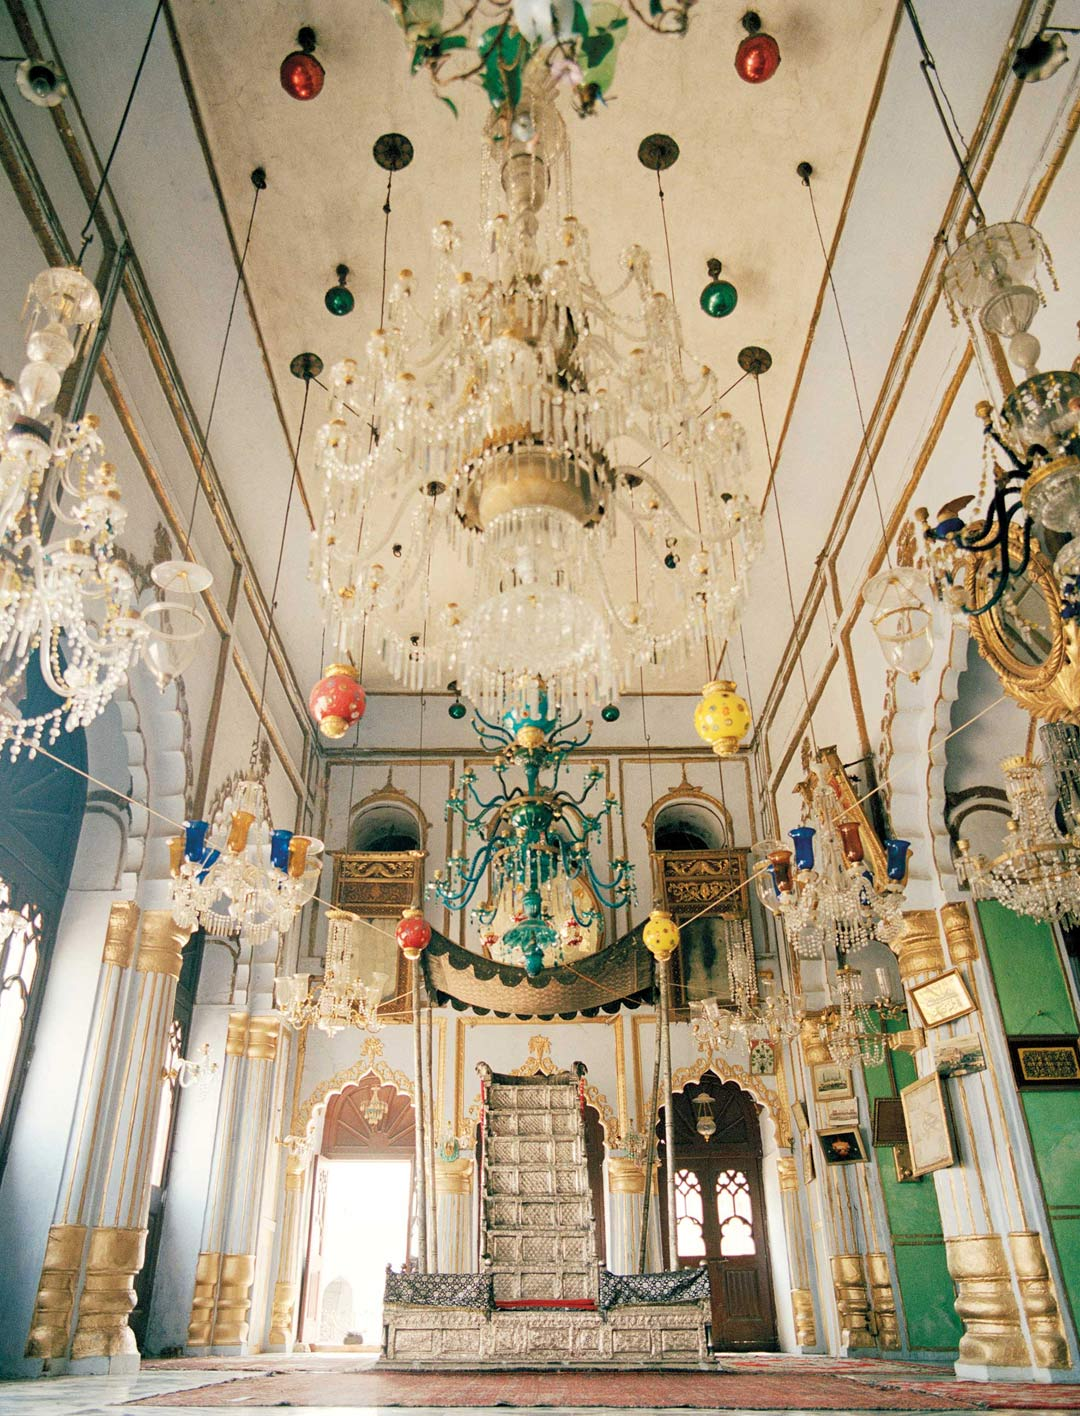 The ornate interiors of the Chota Imambara, built in 1837 as a mausoleum for the ninth Nawab of Awadh, Muhammad Ali Shah.